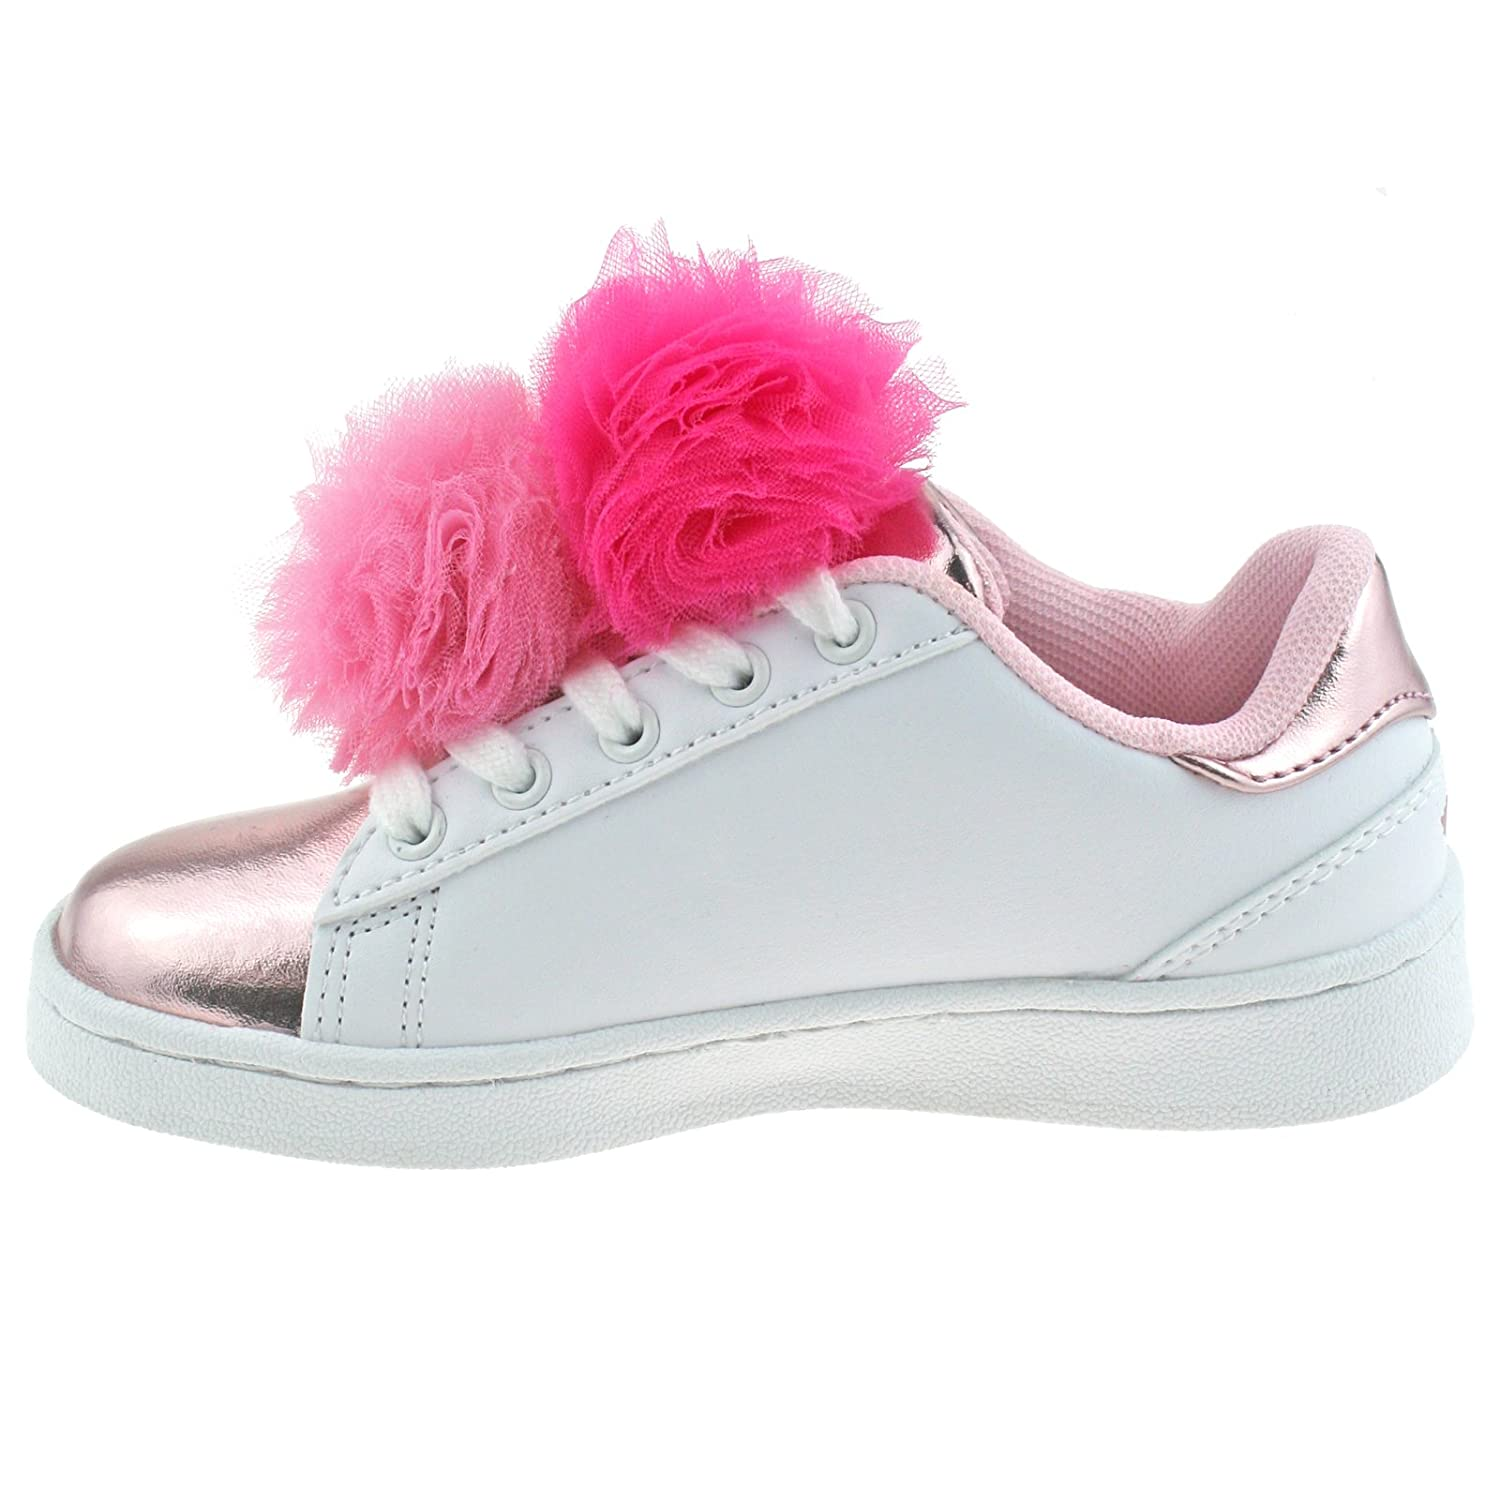 Lelli Kelly LK5826 (AA52) Bianco/Rosa Pon Pon Lace Up Trainer Shoes-33 (UK 1)